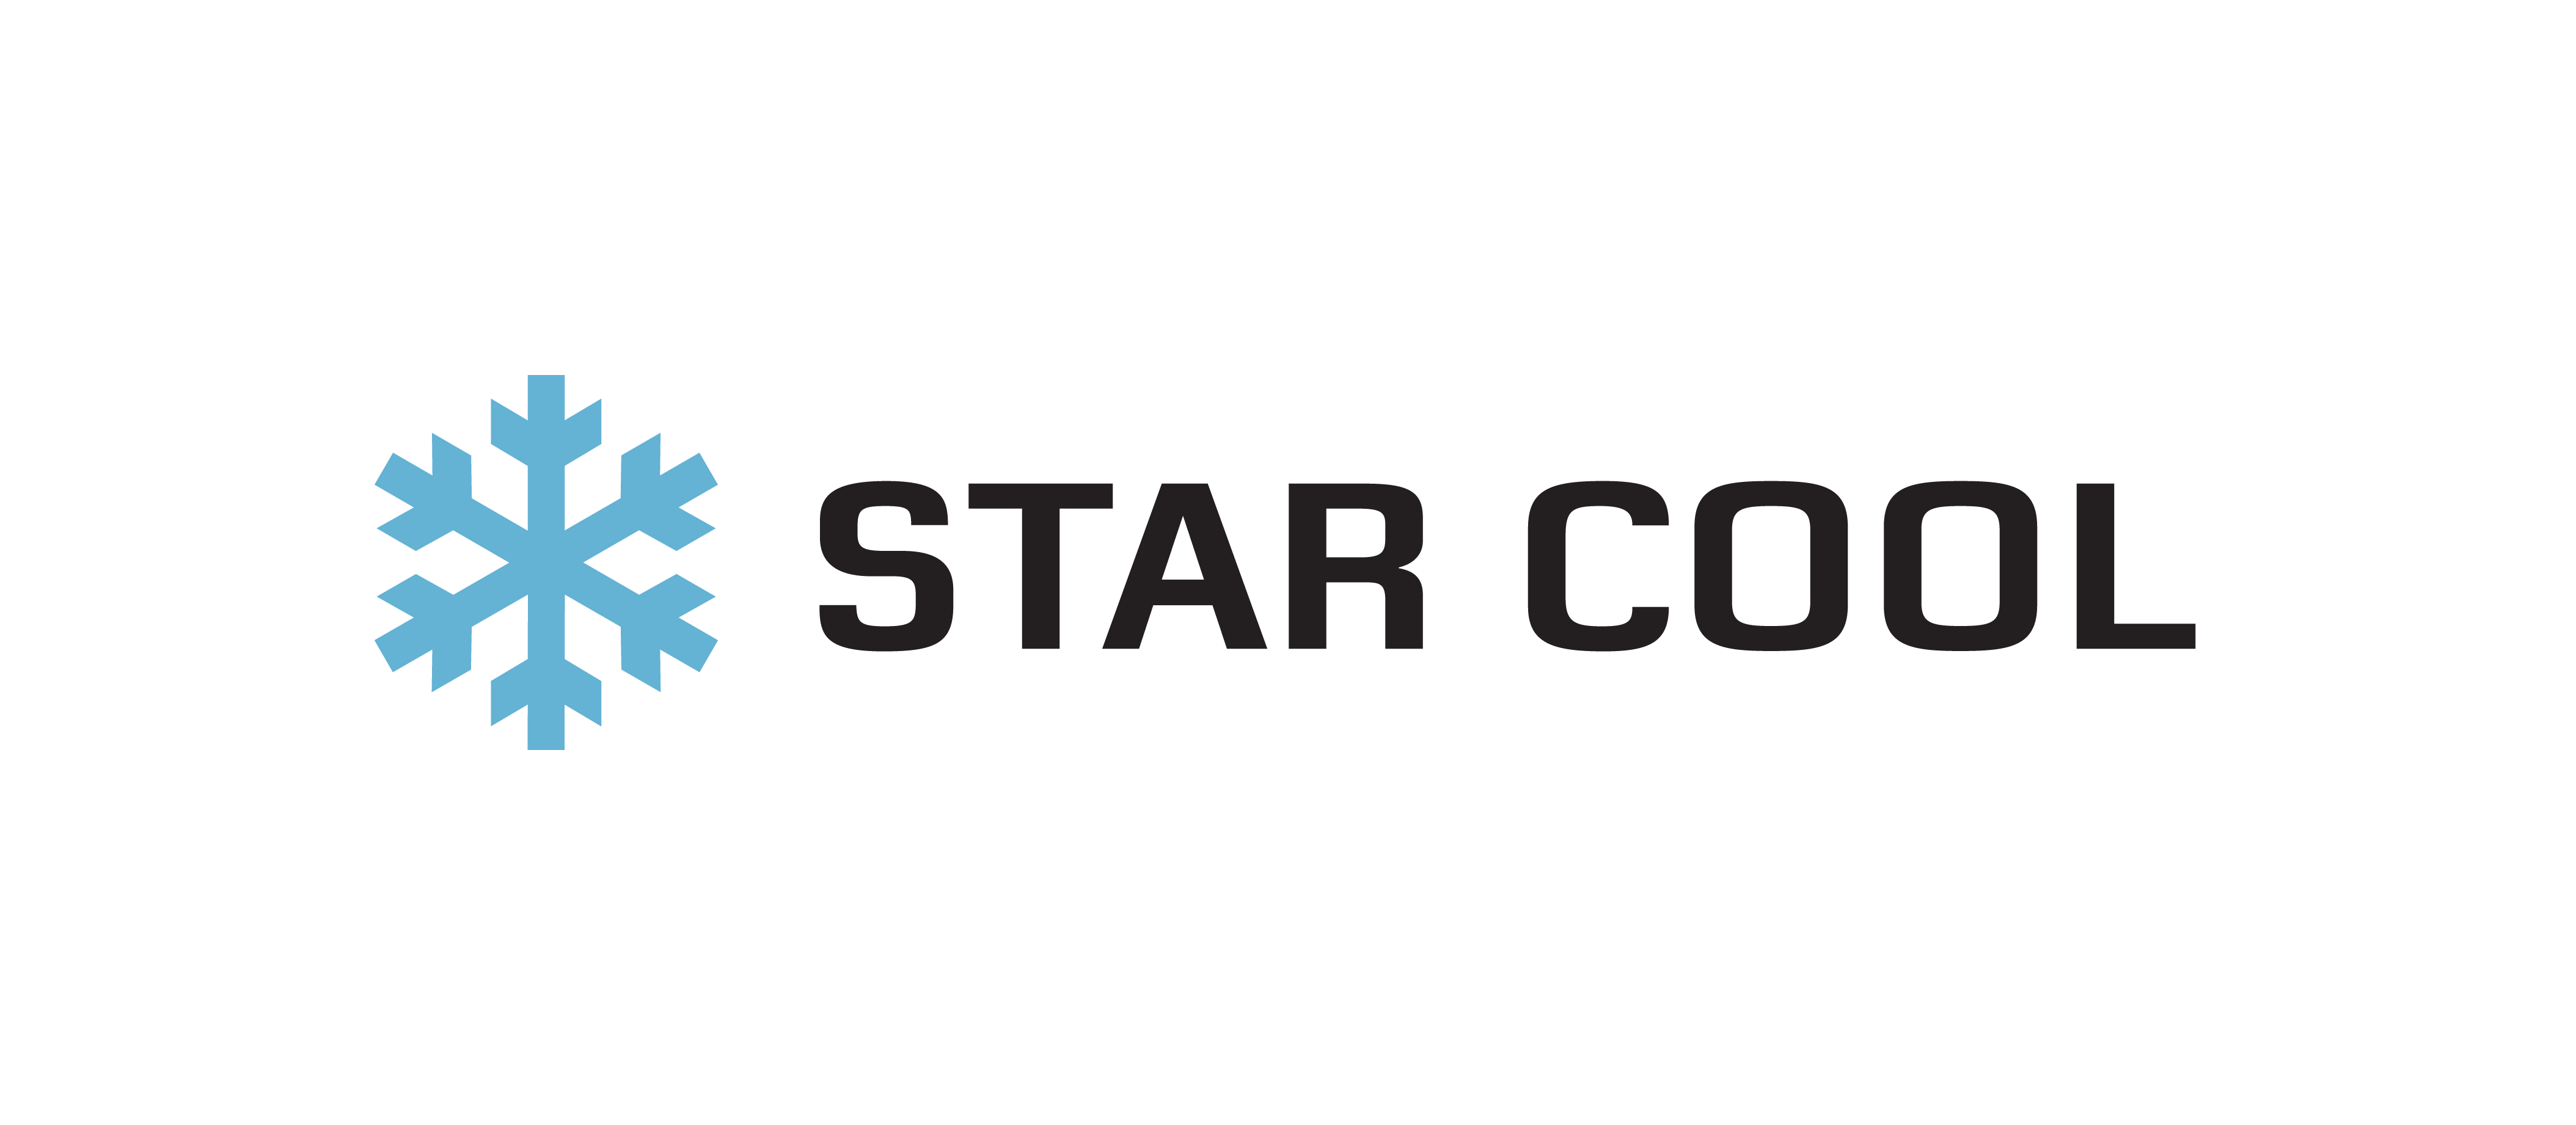 Star Cool logo